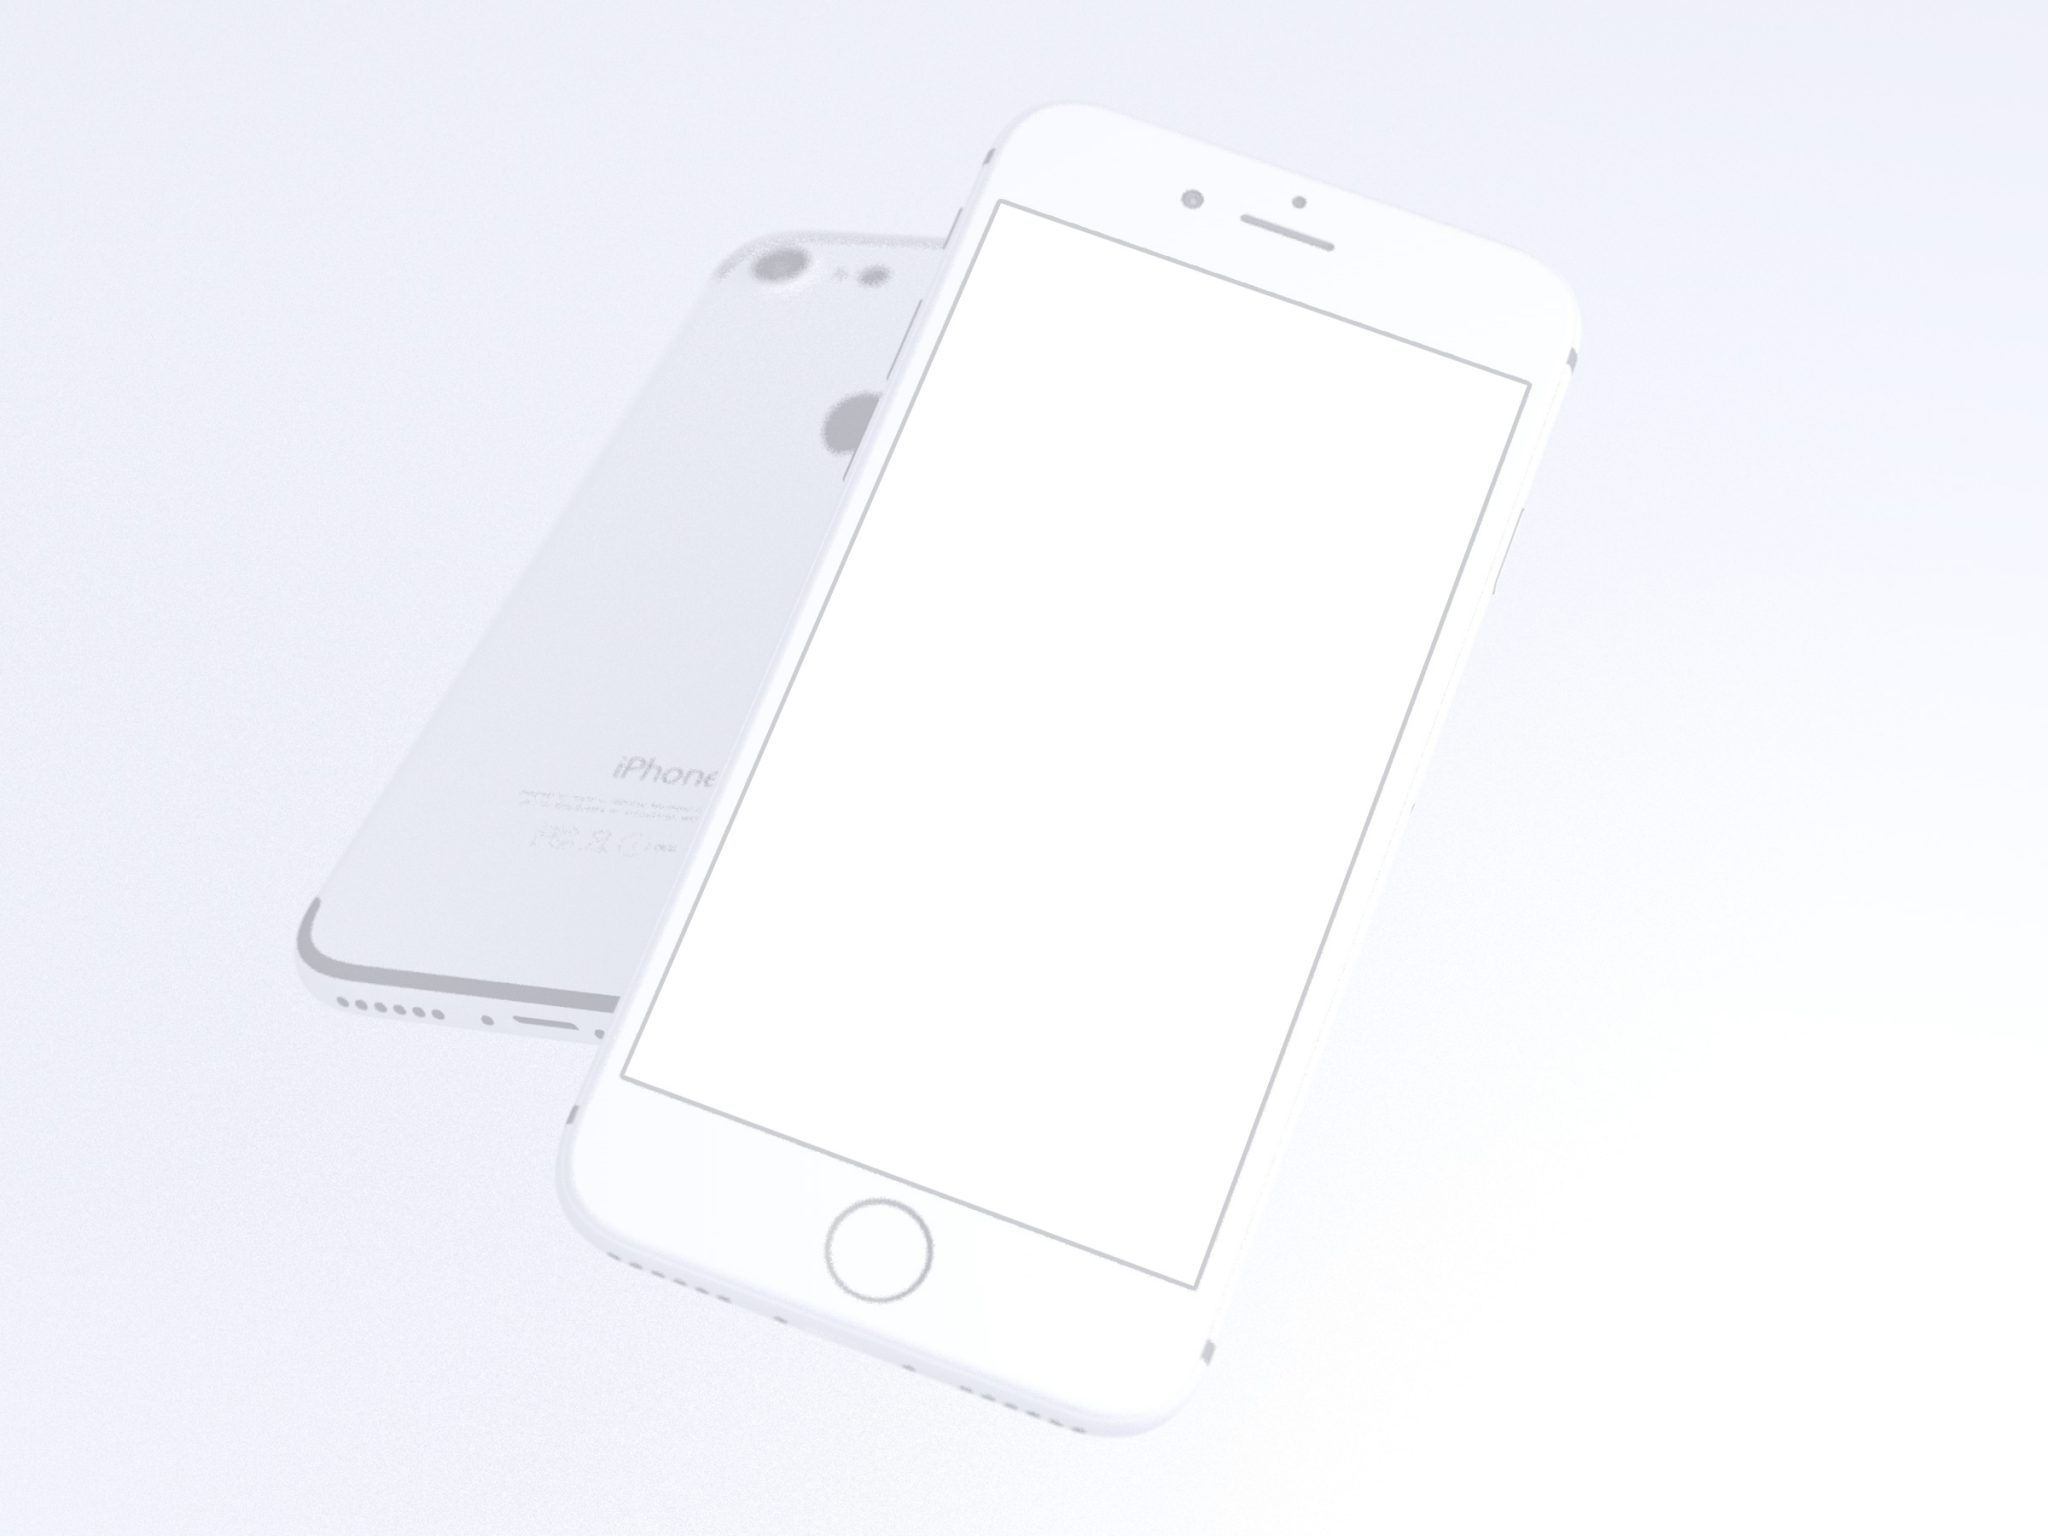 clay-look iPhone 7 mockups for PSD - White Device Perspective